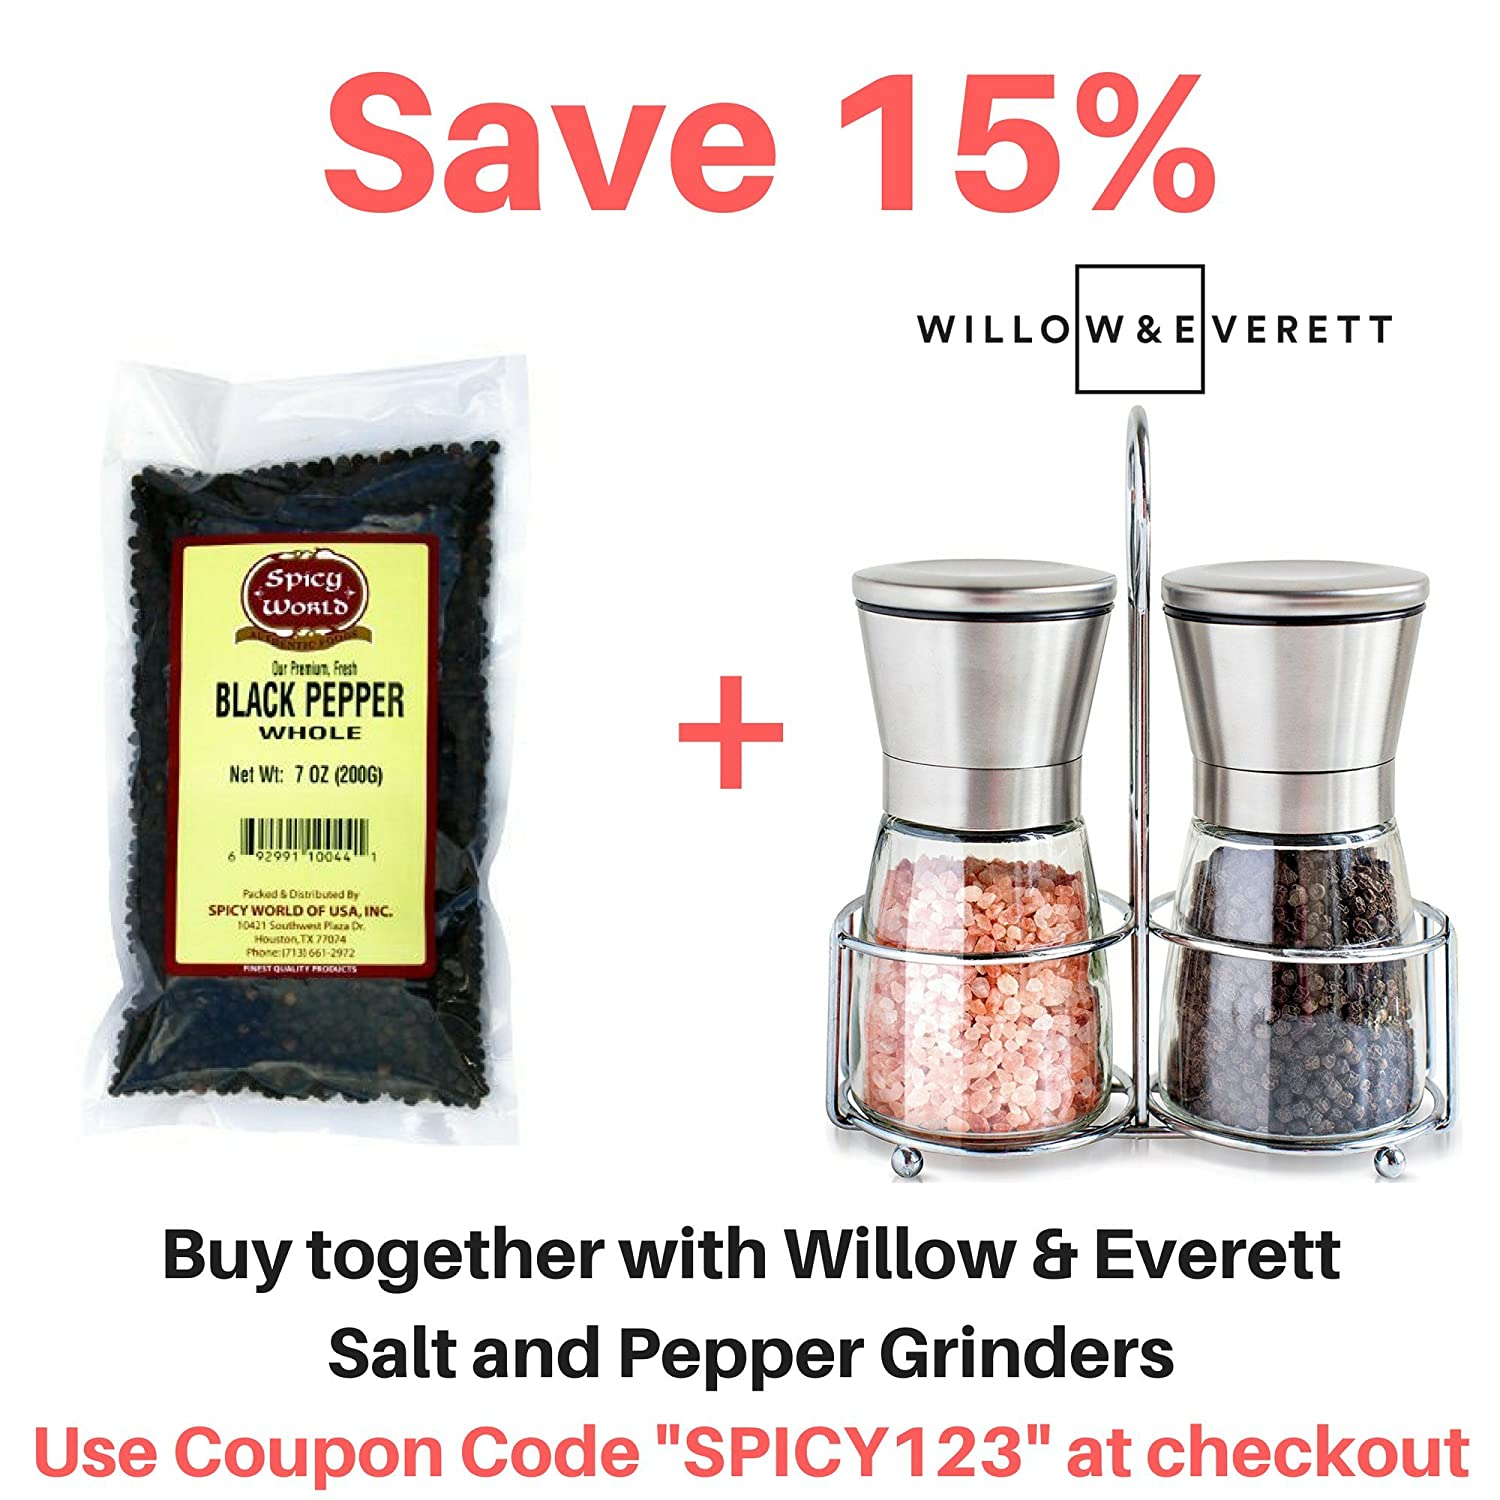 Read Reviews And Compare Black Peppercorns Whole 7oz